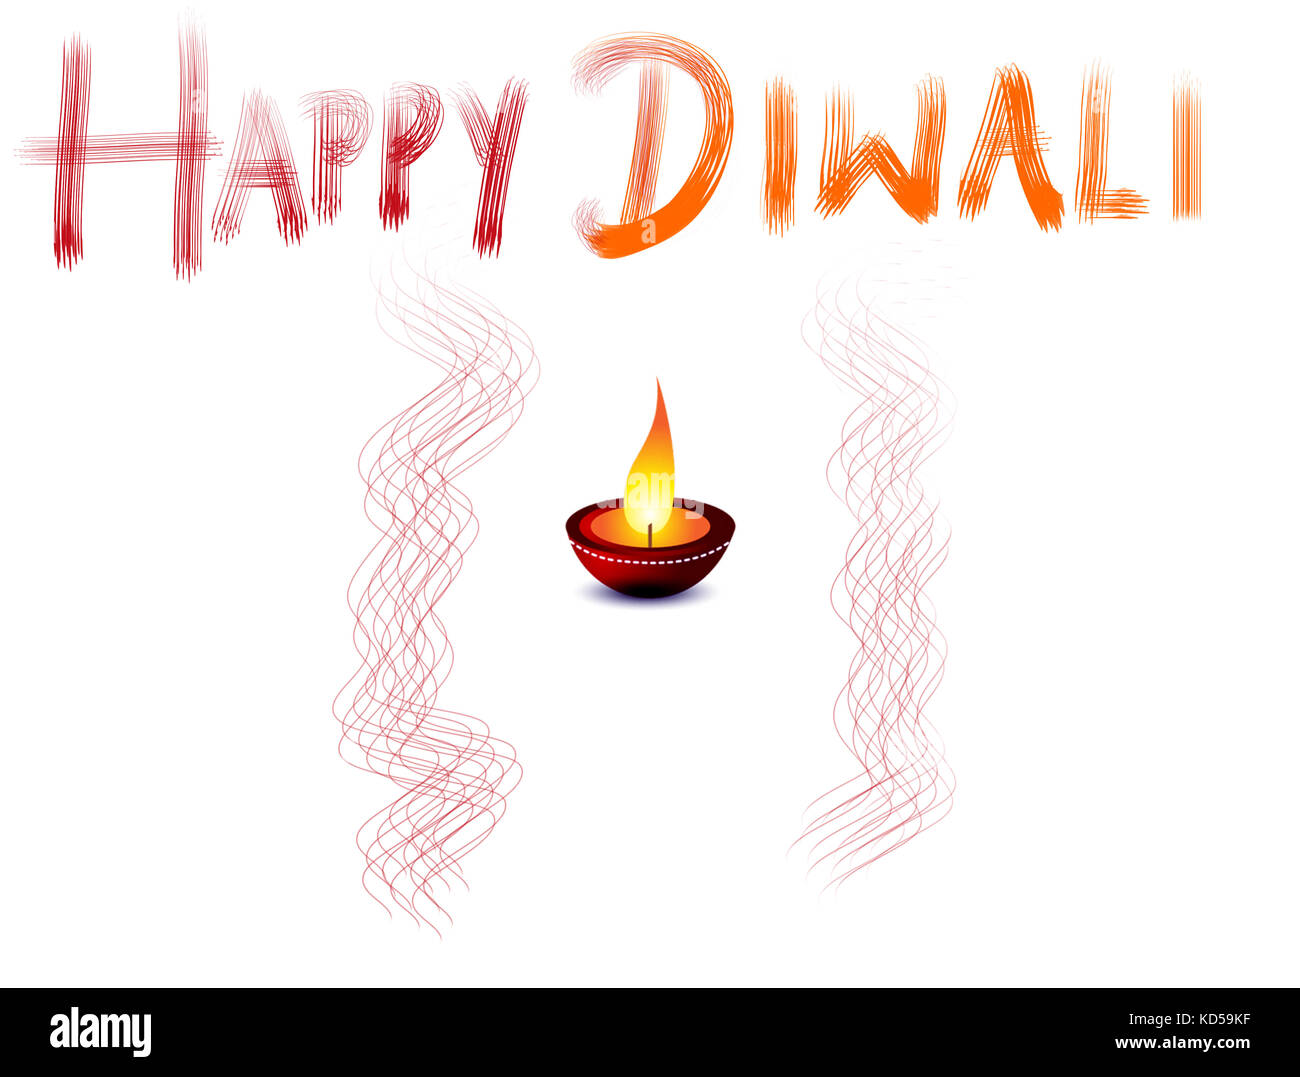 Diwali greetings stock photos diwali greetings stock images alamy happy diwali wishes and greetings stock image m4hsunfo